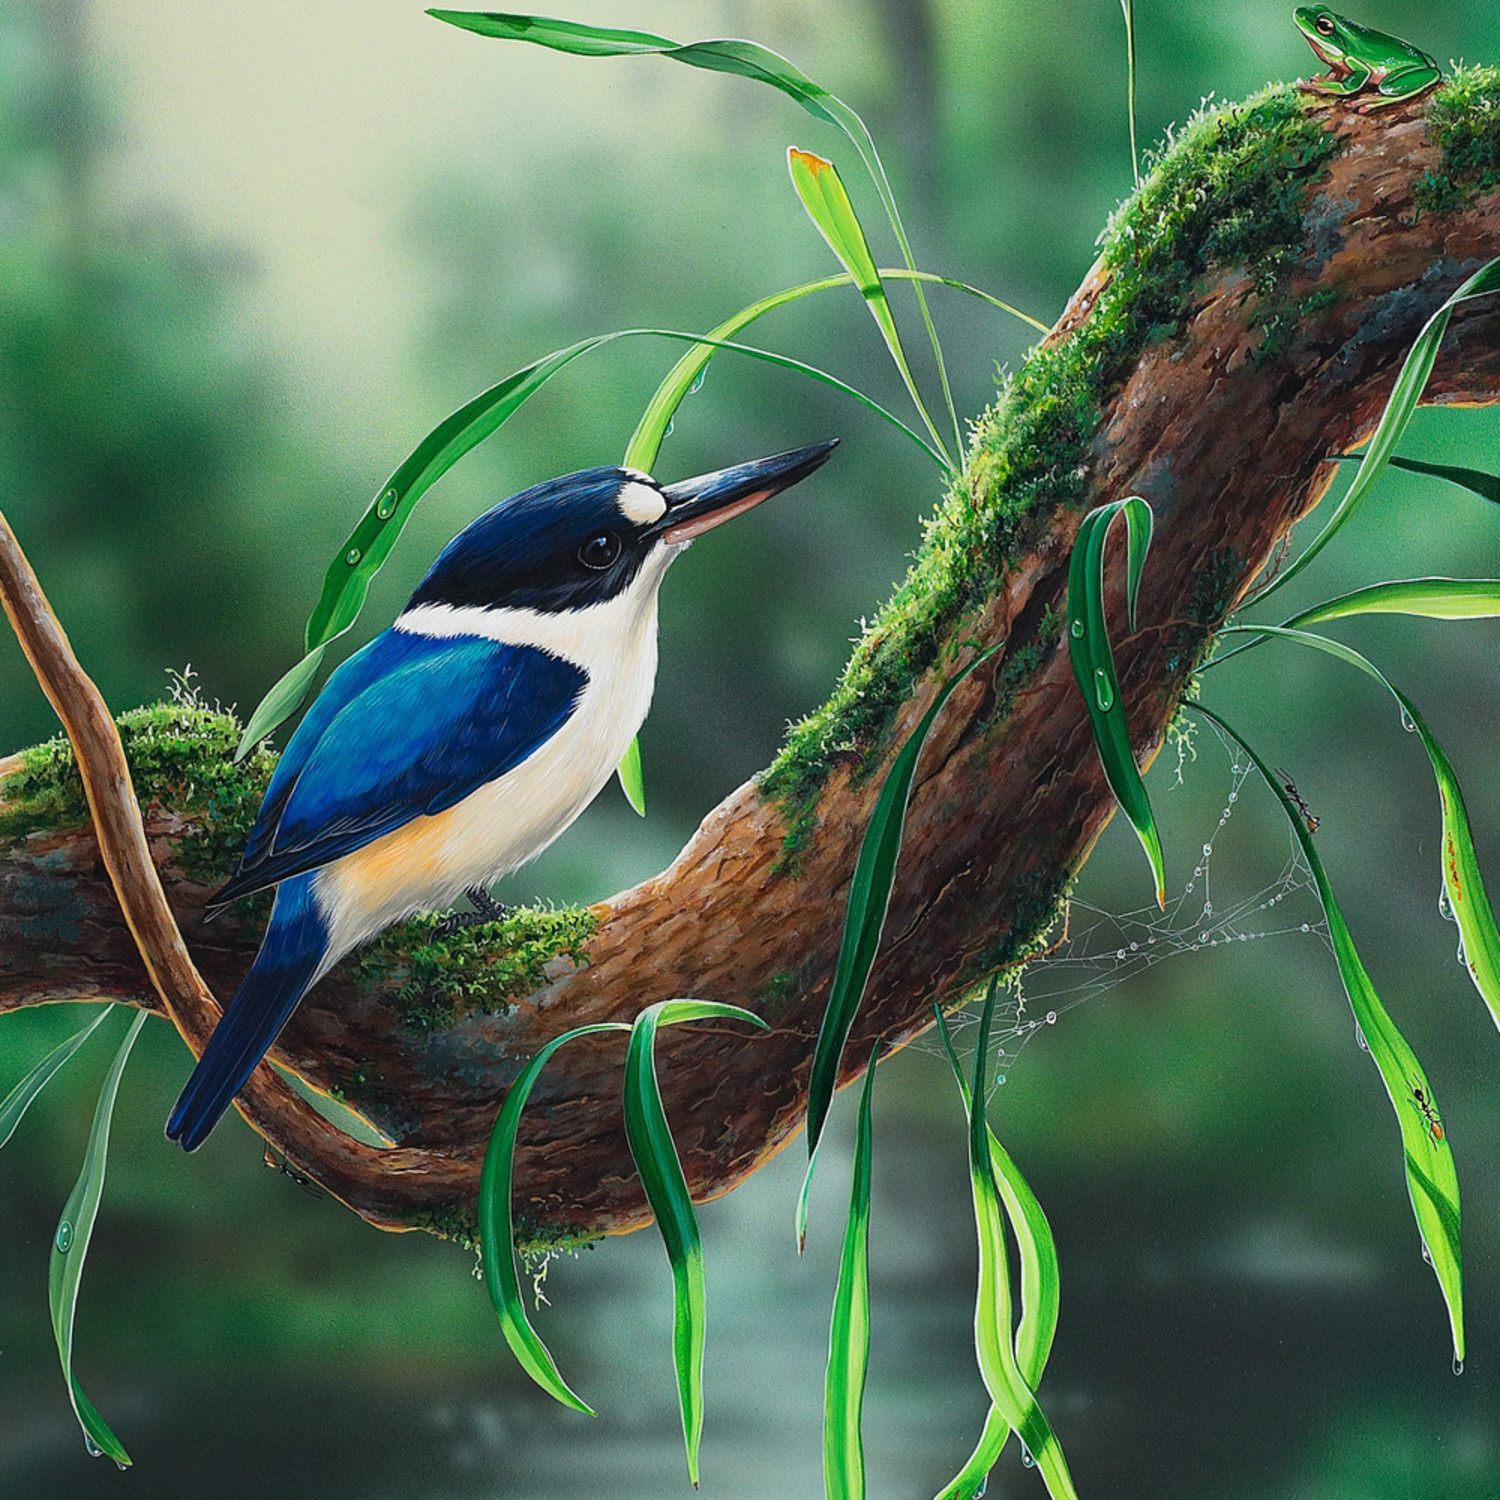 River view   forest kingfisher with an eastern dwarf tree frog natalie jane parker   australian native wildlife jtv1sv